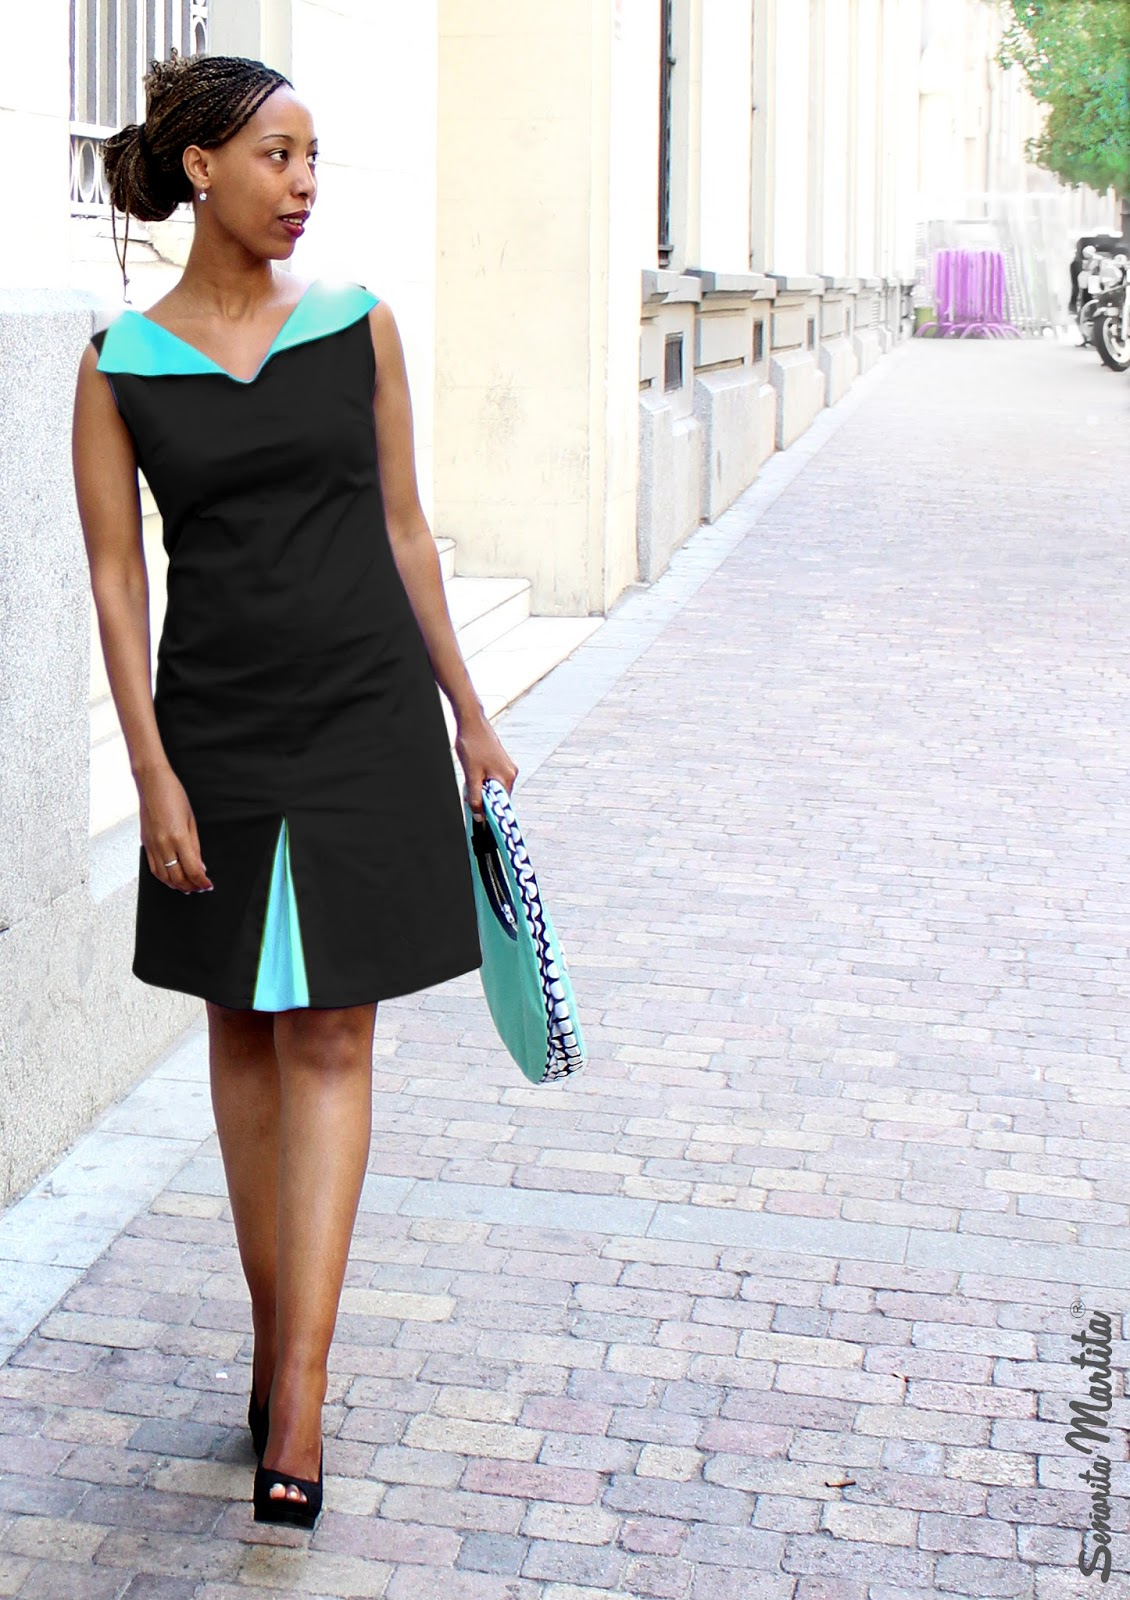 dress by Senorita Martita | black cotton with aquamarine collar